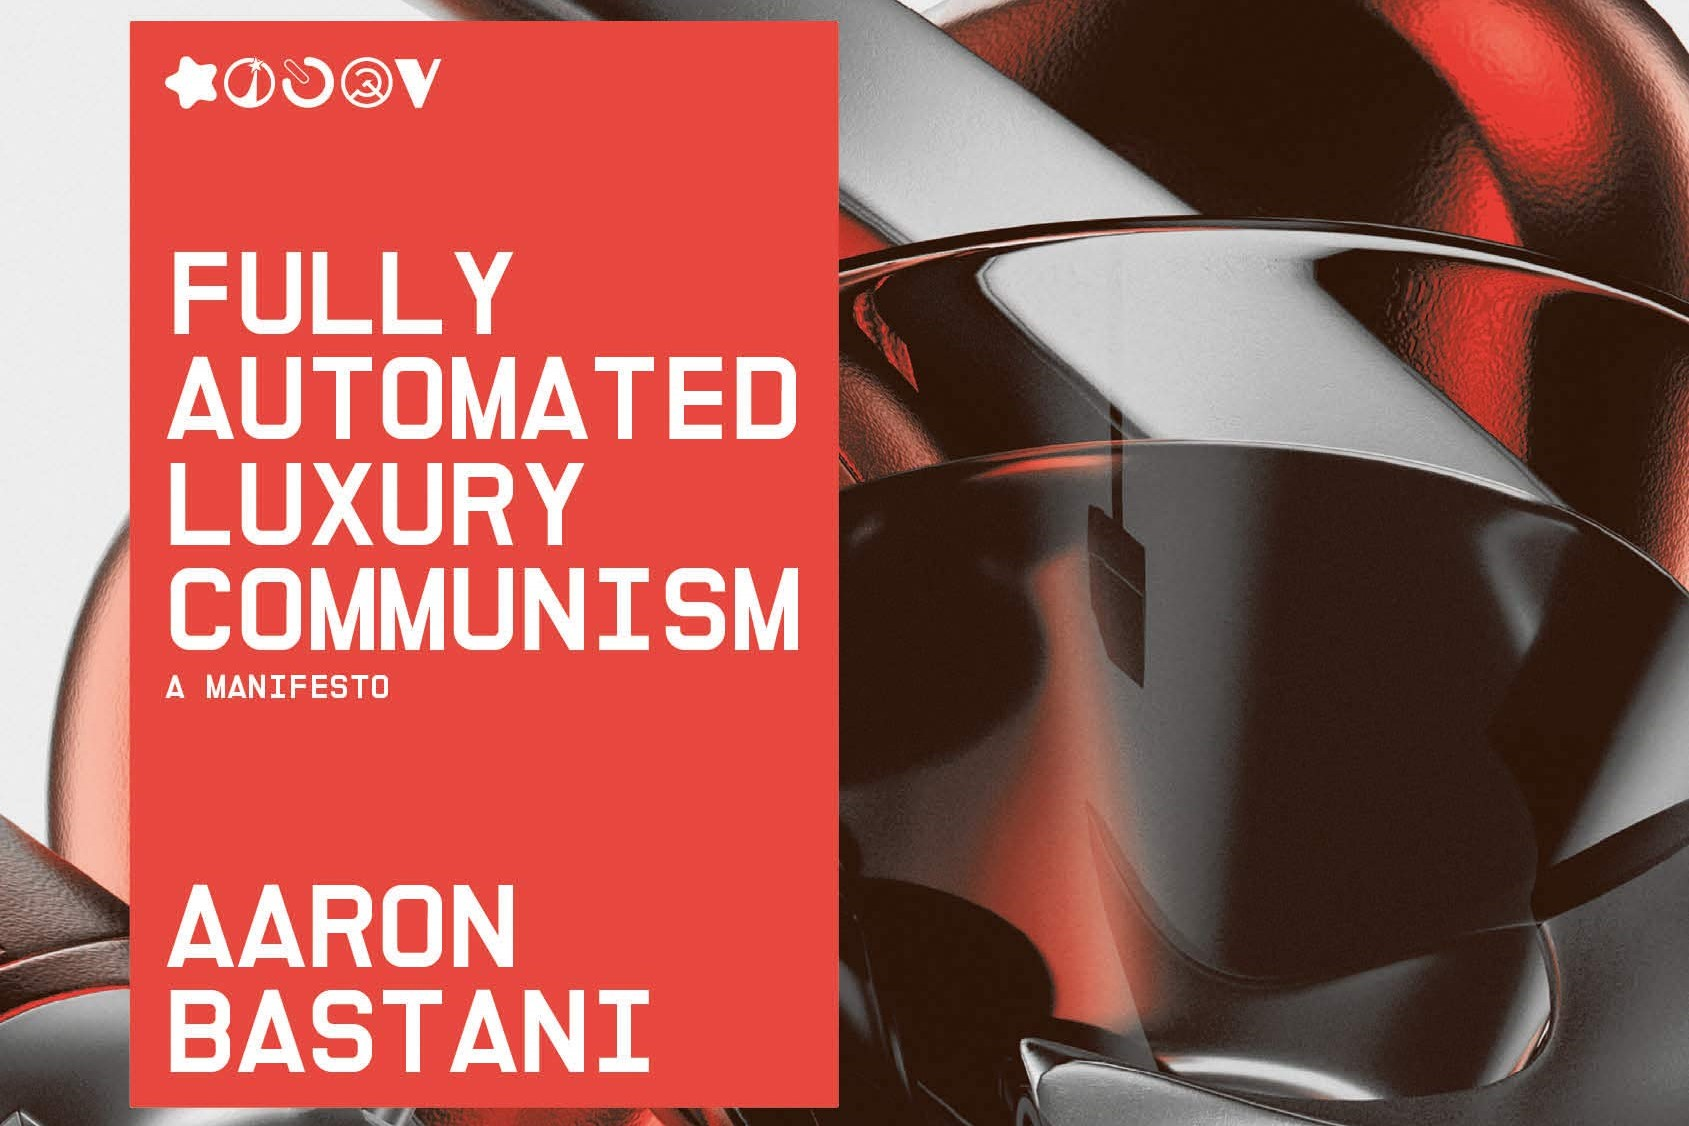 Fully Automated Luxury Communism (FALC) by Aaron Bastani explores the future of human work.